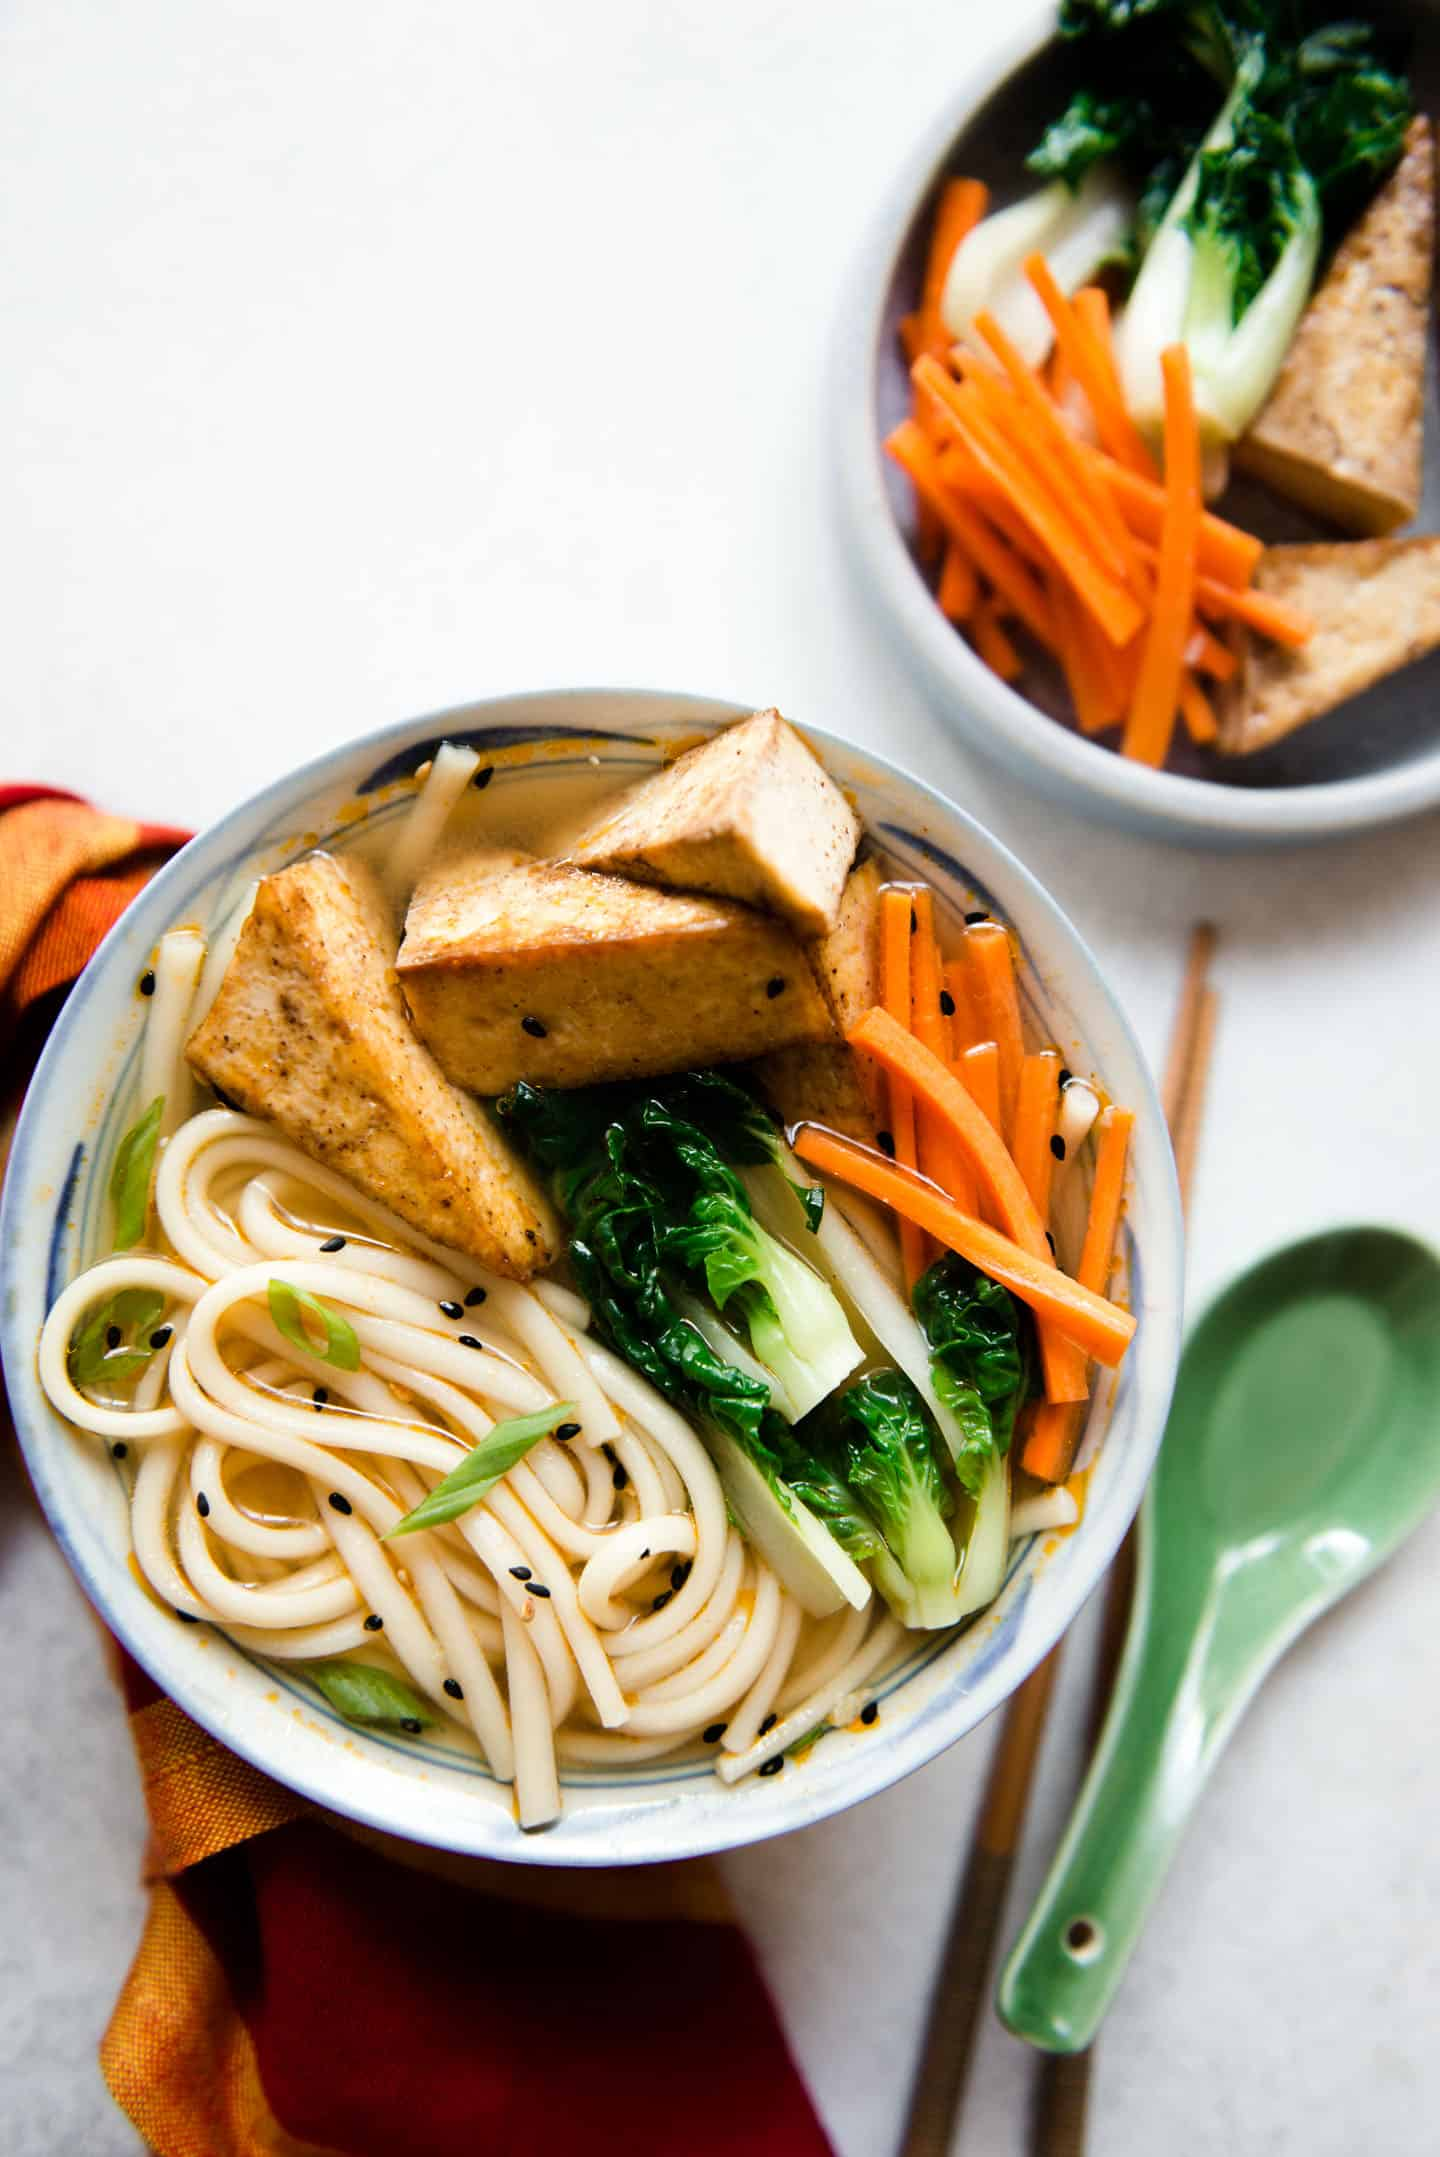 Ginger Miso Udon Noodles with Five Spice Tofu